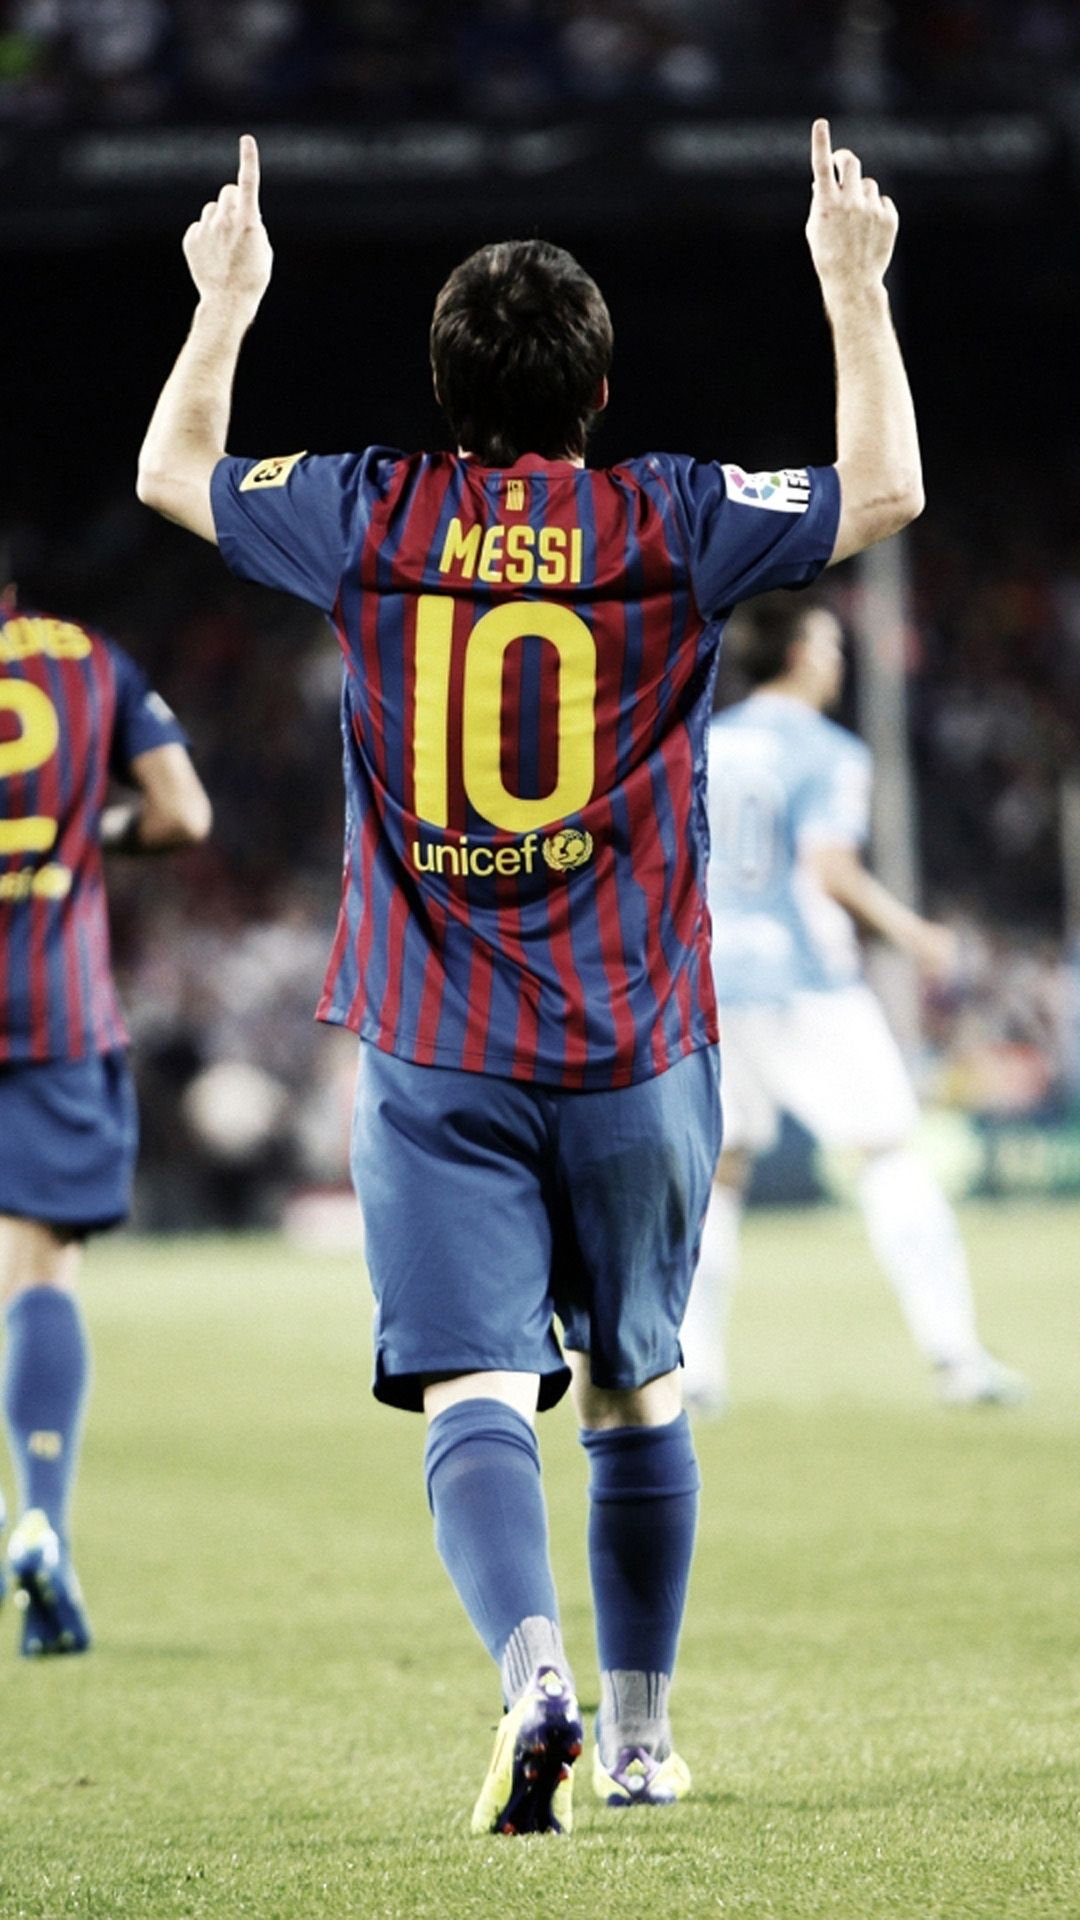 Lionel Messi Wallpaper Iphone 6 Download Best Lionel Messi